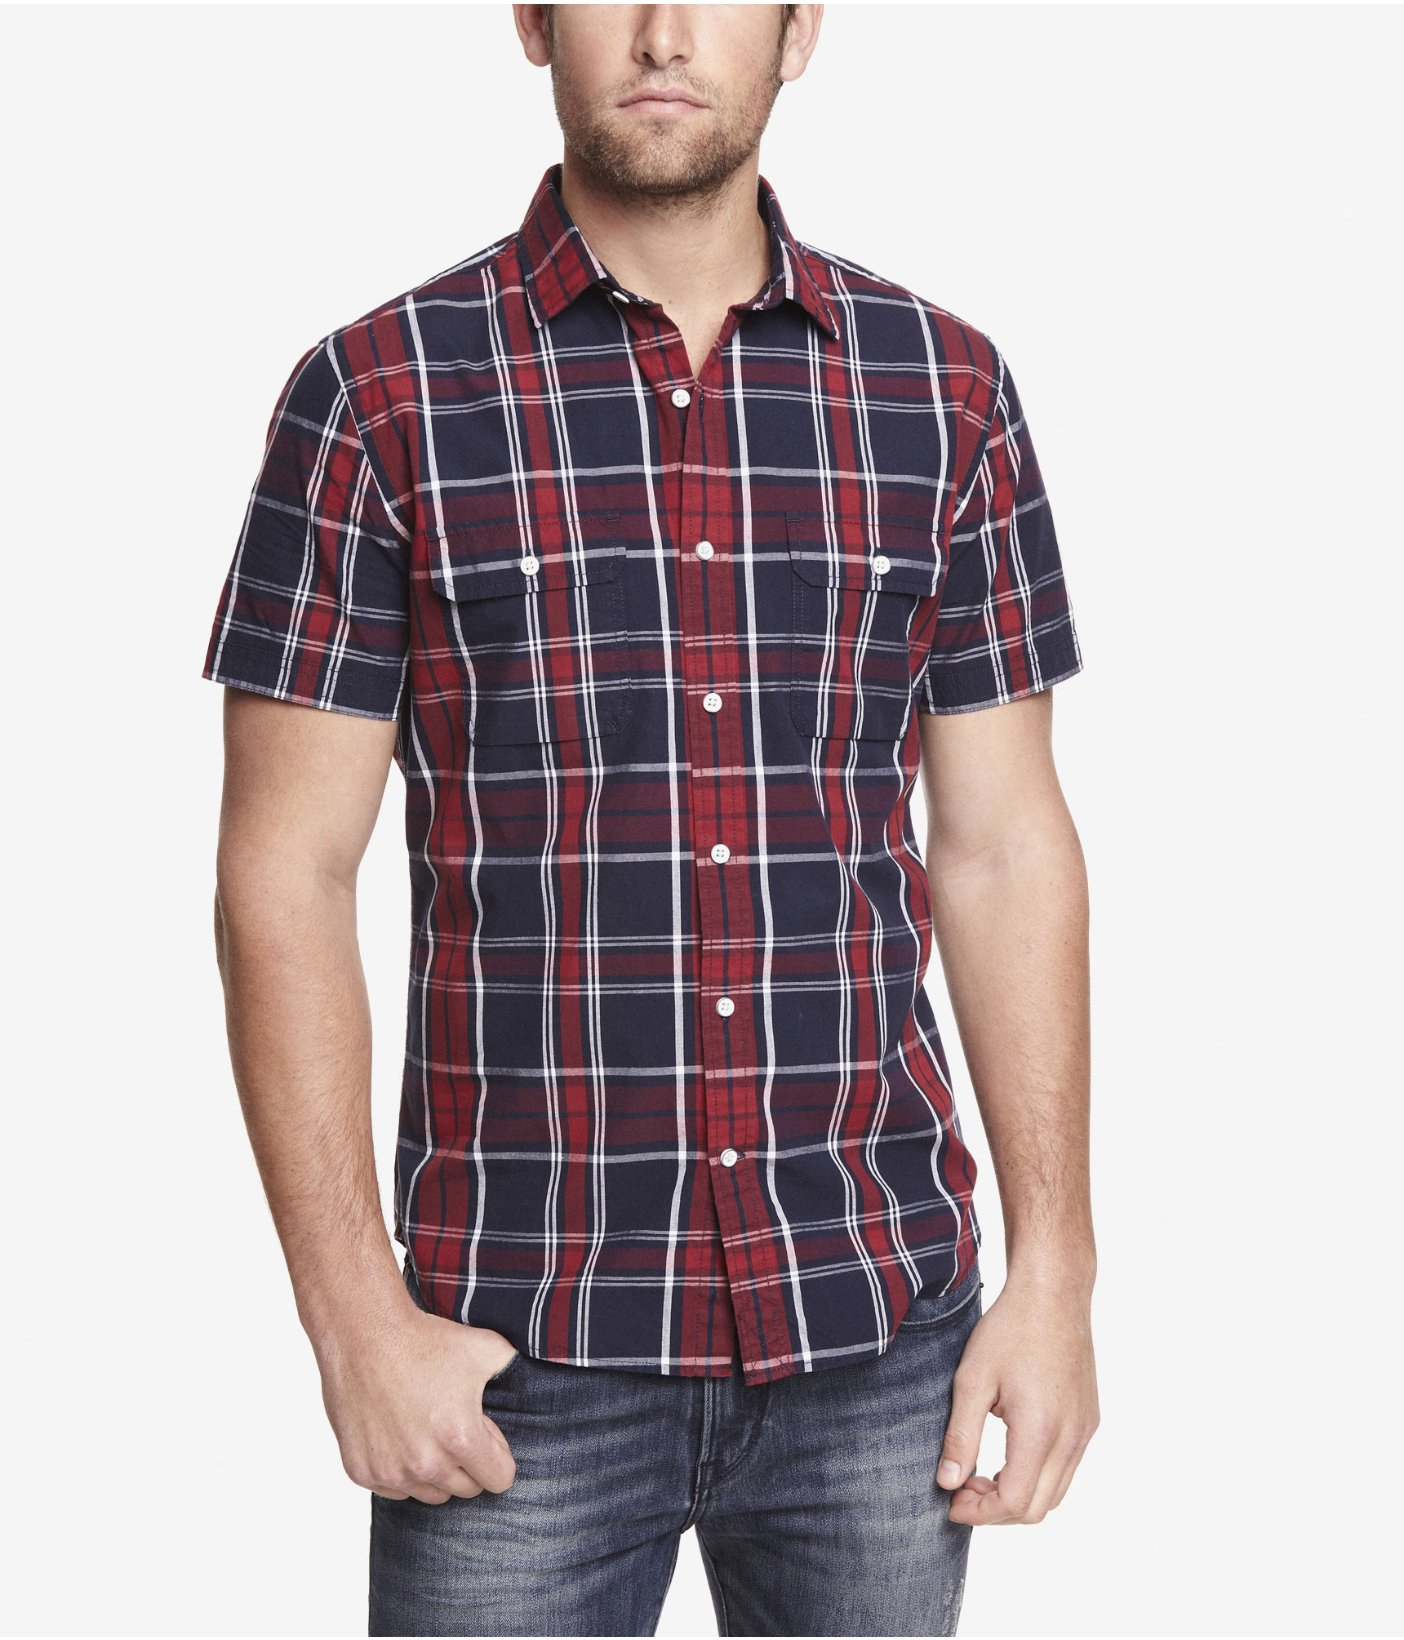 Short sleeve plaid shirts mens artee shirt Short sleeve plaid shirts